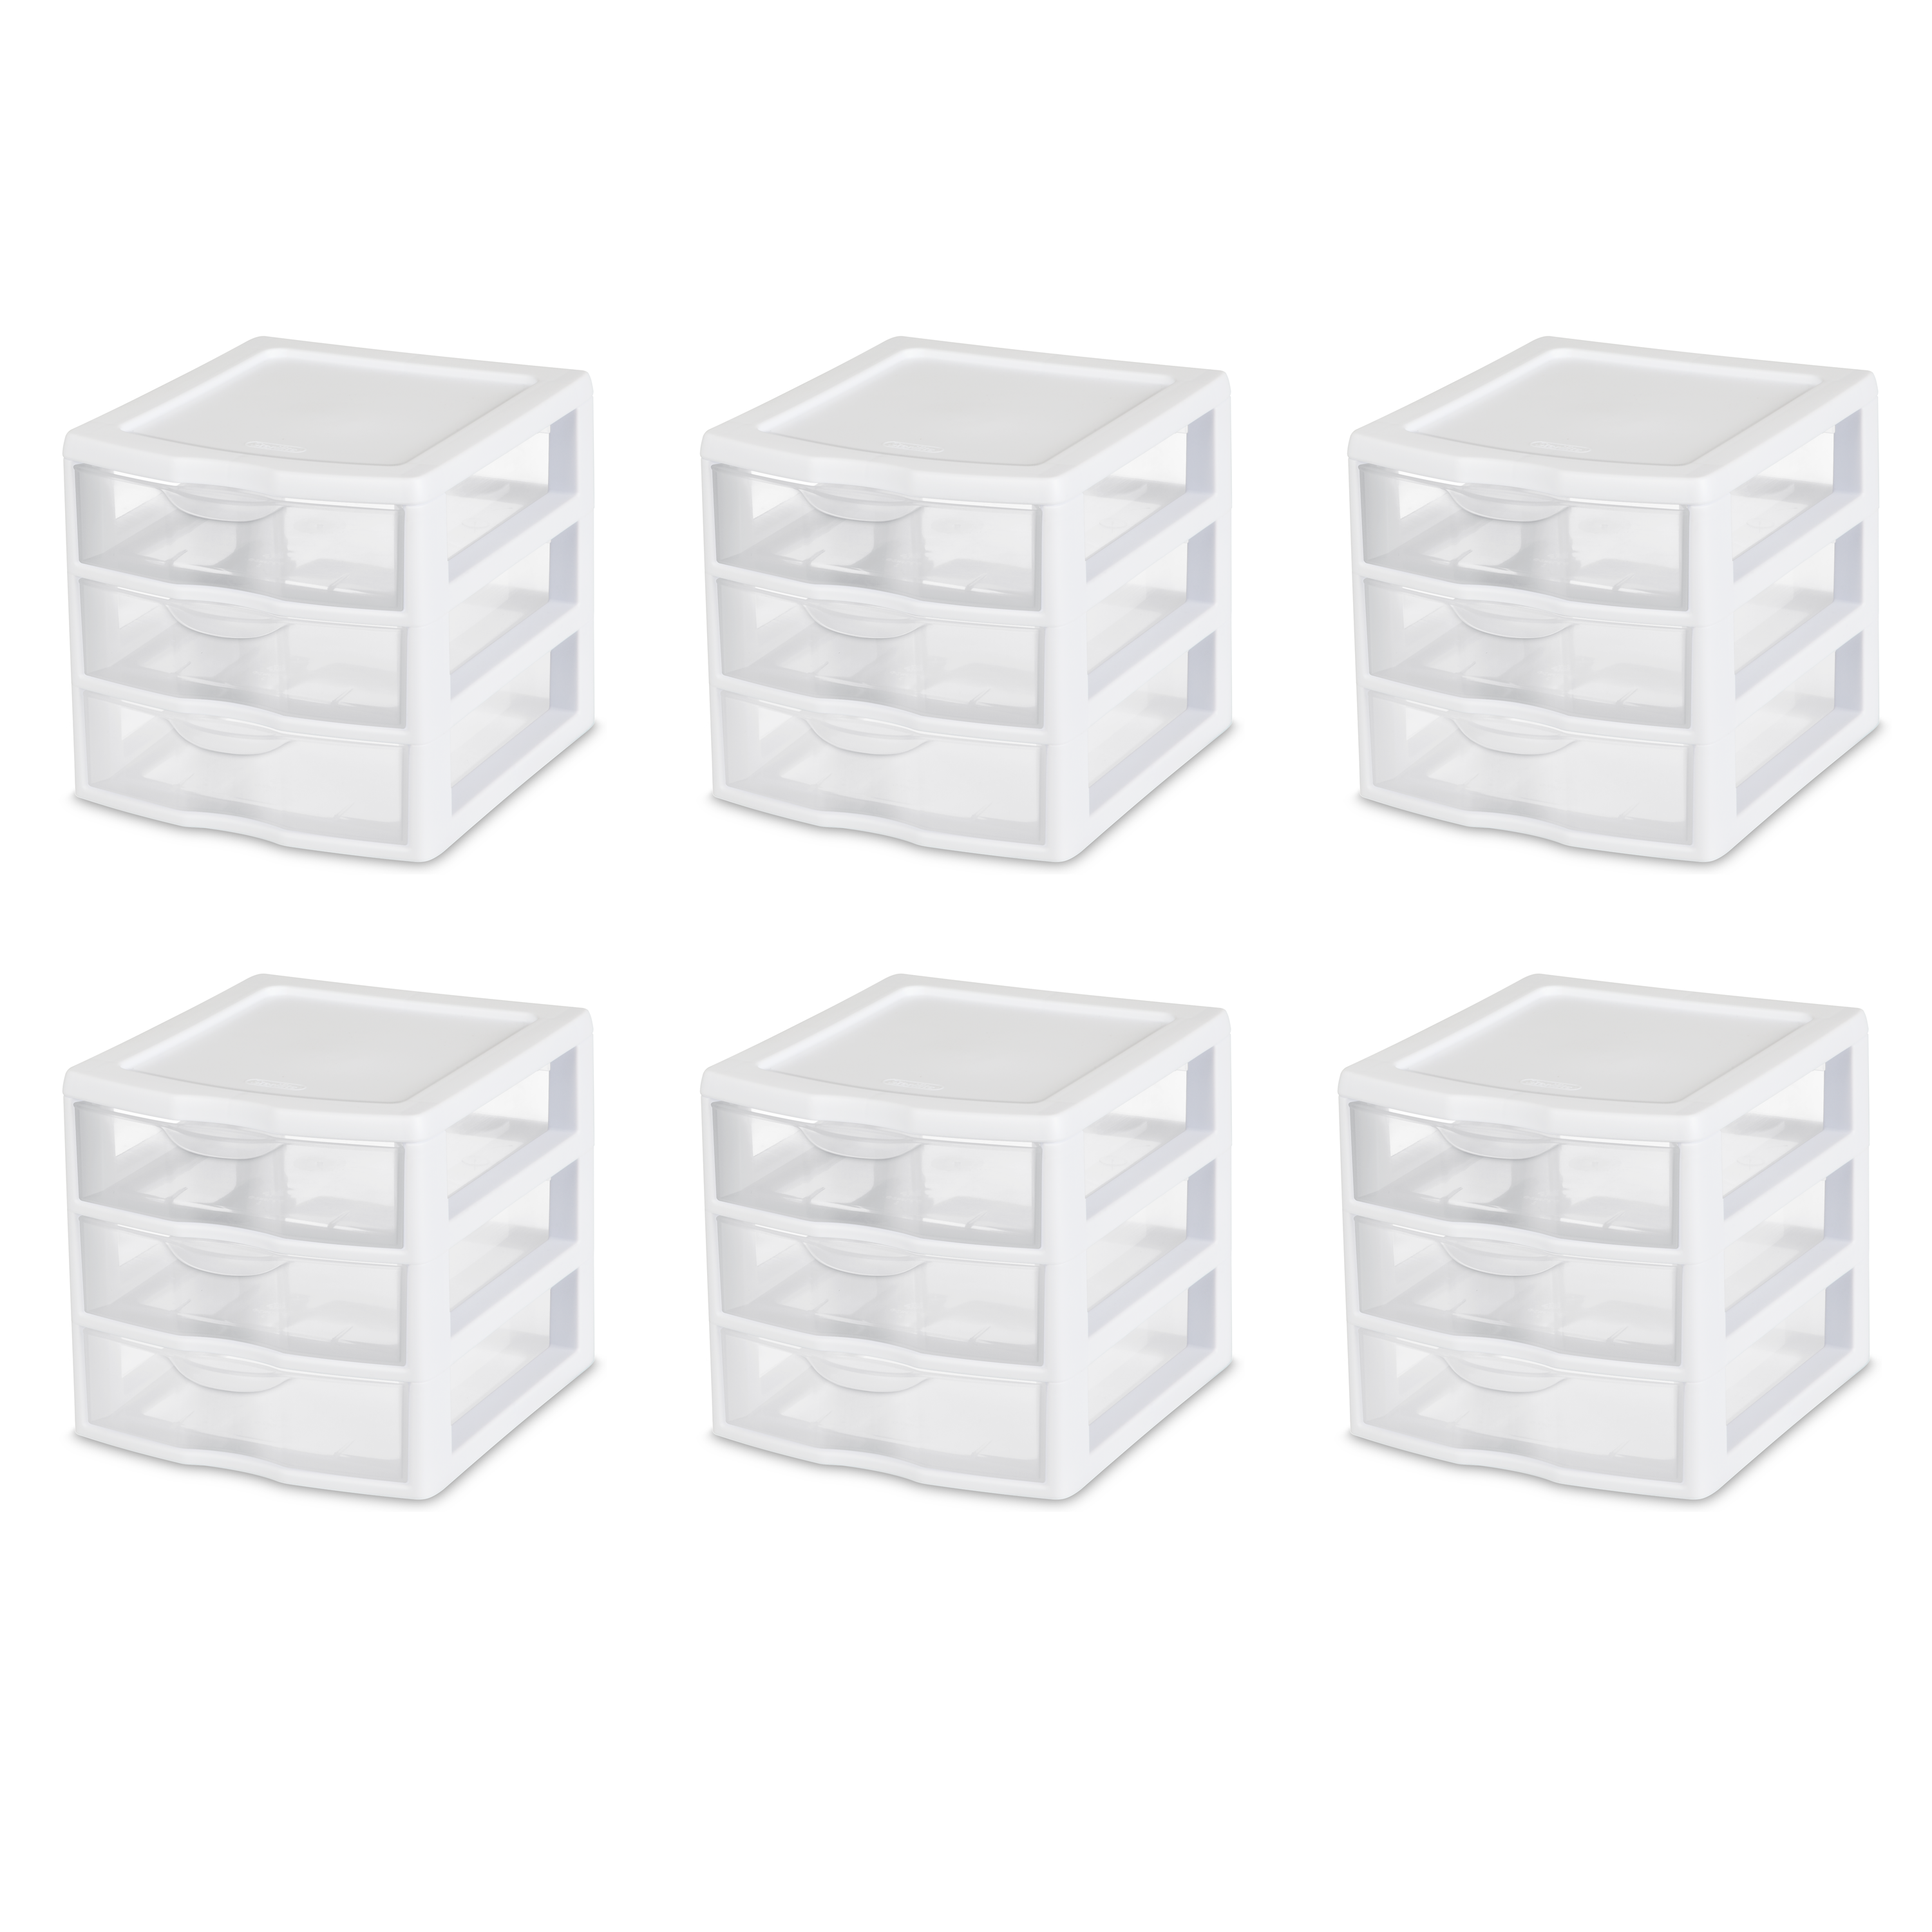 Sterilite Small 3 Drawer Unit, White (Available in Case of 6 or Single Unit)